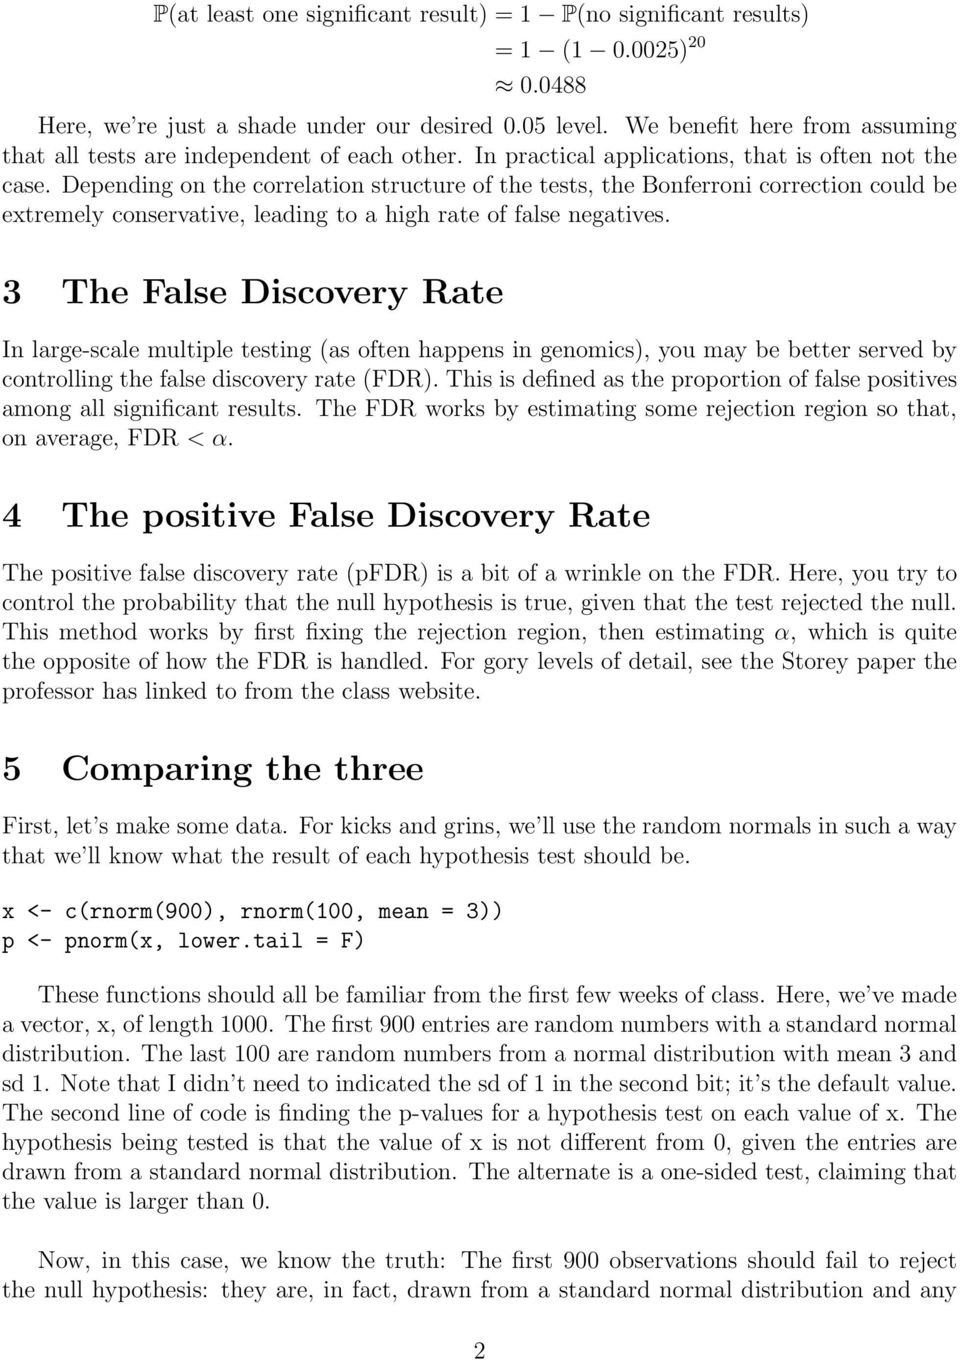 Depending on the correlation structure of the tests, the Bonferroni correction could be extremely conservative, leading to a high rate of false negatives.